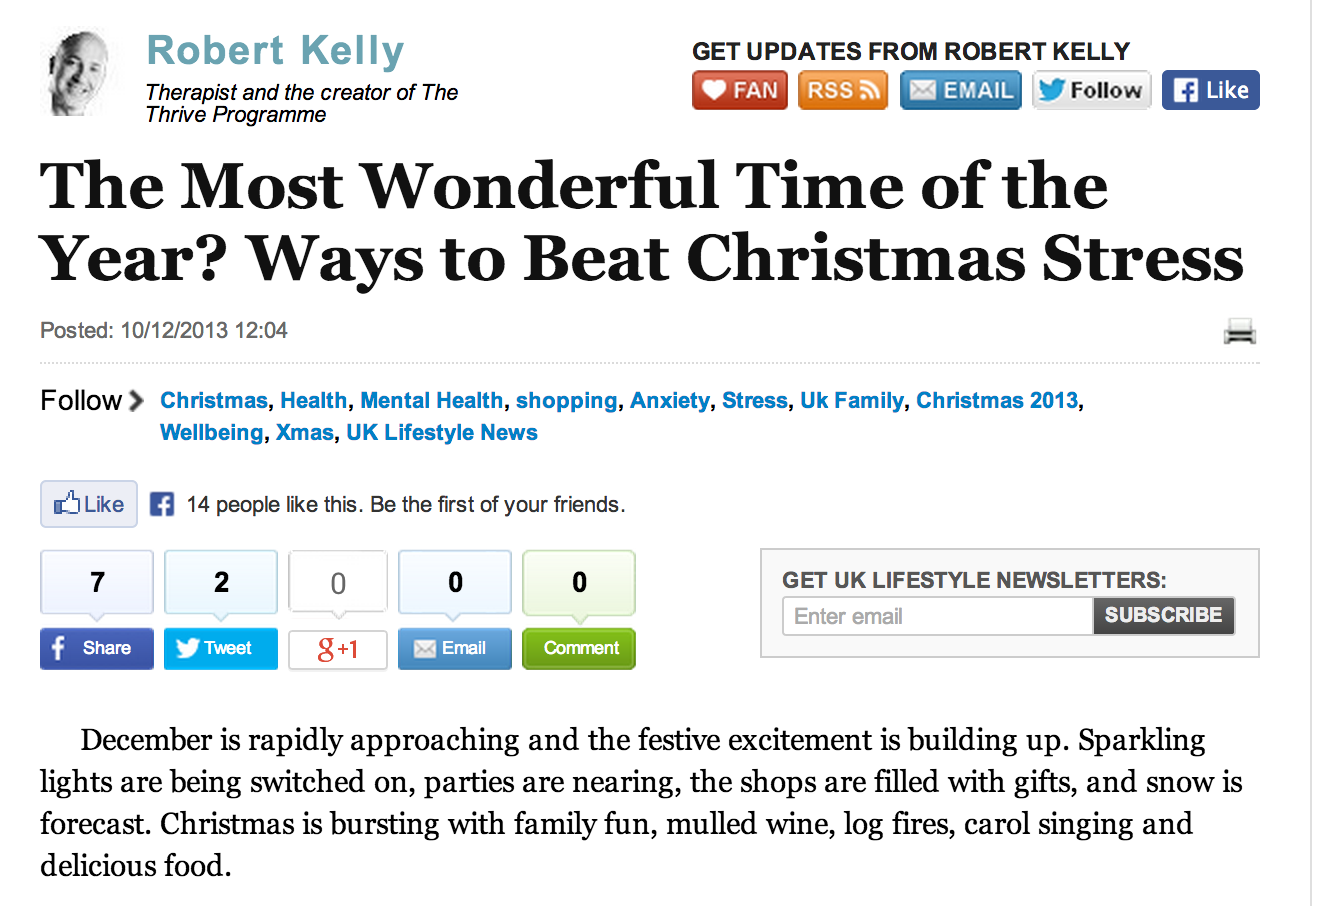 Screen-Shot-2013-12-10-at-14.13.04 It's the most wonderful time of the year: how to beat xmas stress - HuffPost blog